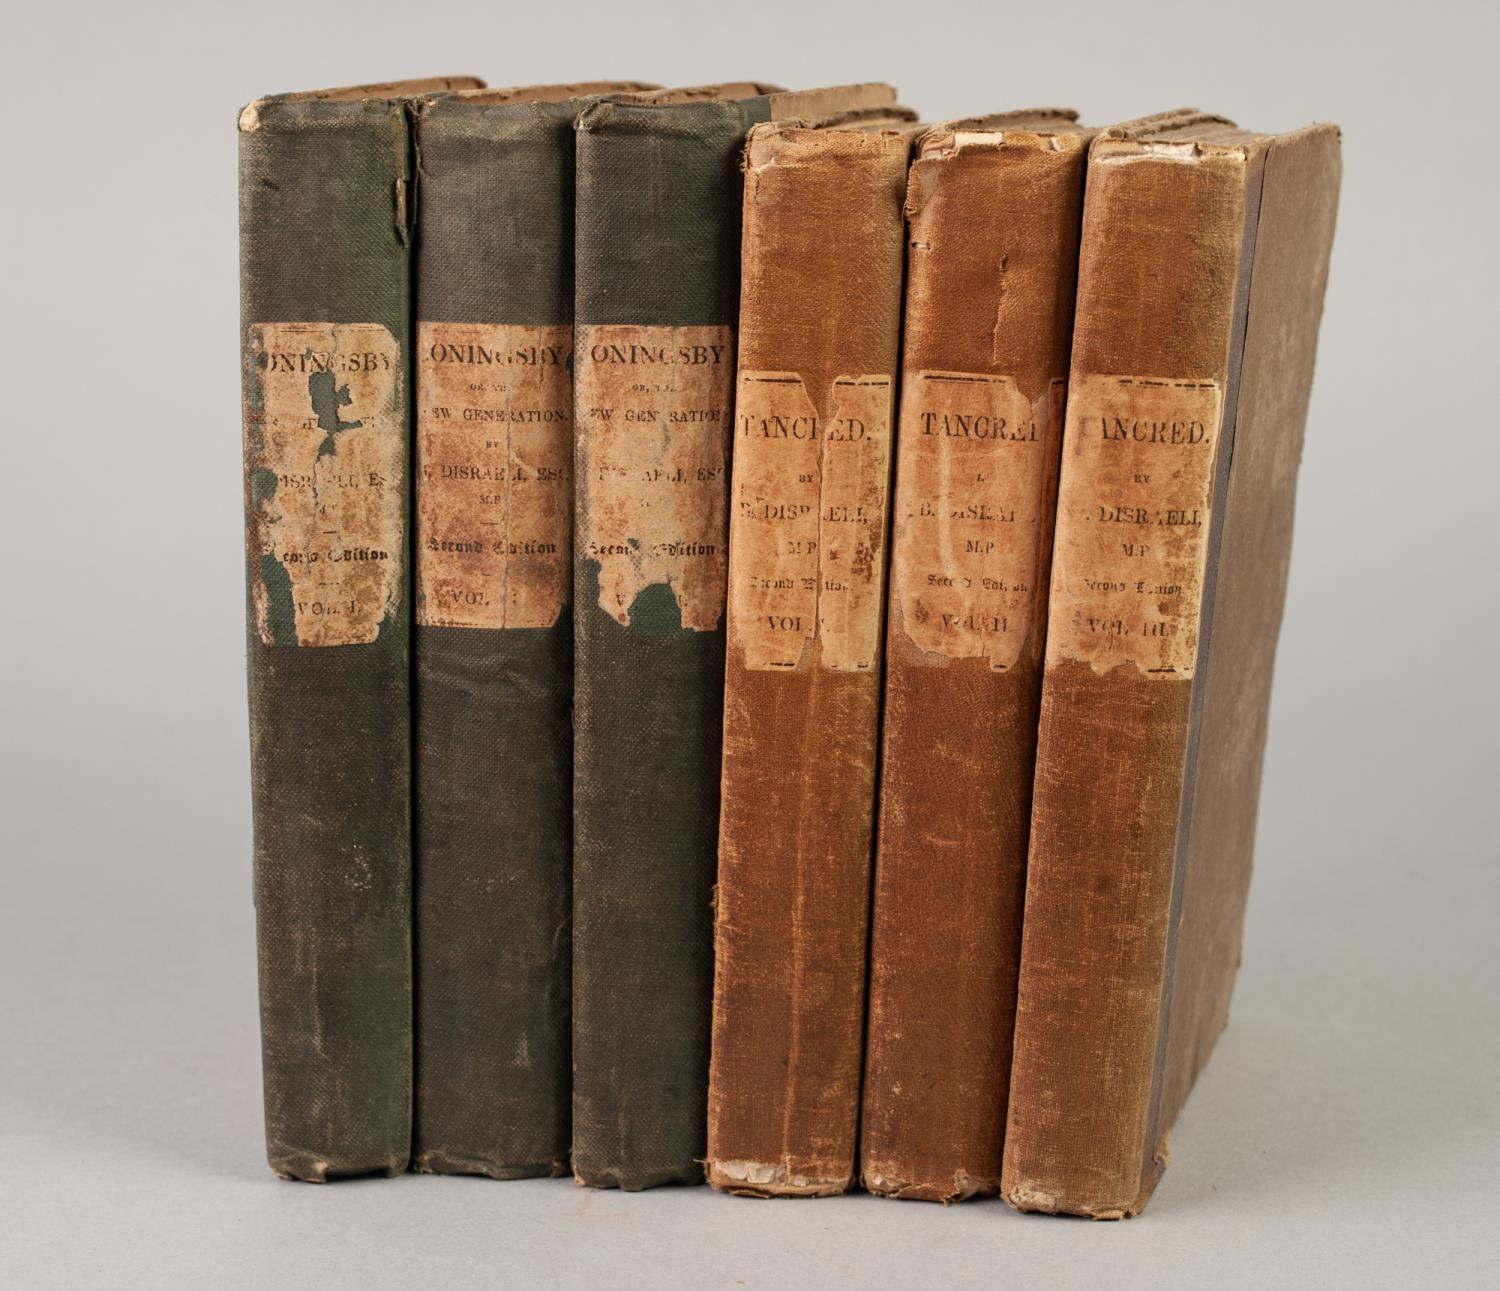 Lot 24 - B DISRAELI, TANCRED AND THE NEW CRUSADE, 3 volumes, published Henry Colburn, 1847, second edition,